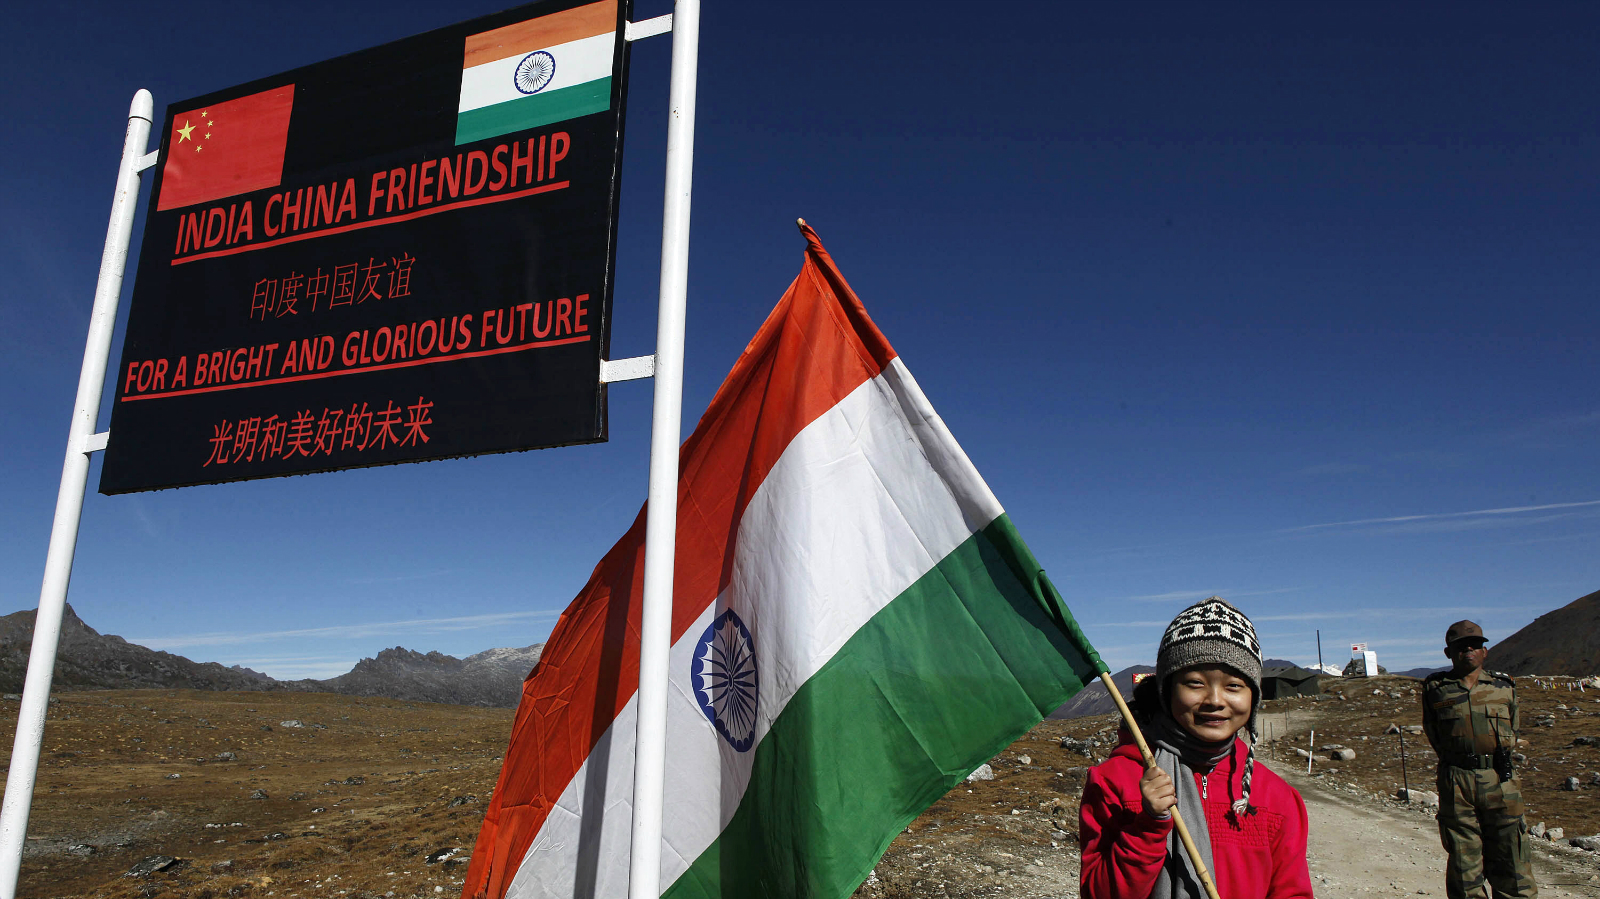 In this Oct. 21, 2012 file photo, an Indian girl poses for photographs with an Indian flag at the Indo China border in Bumla at an altitude of 15,700 feet (4,700 meters) above sea level in Arunachal Pradesh, India. While the recent troop standoff in a remote Himalayan desert spotlights a long-running border dispute between China and India, the two emerging giants are engaged in a rivalry for global influence that spreads much farther afield.